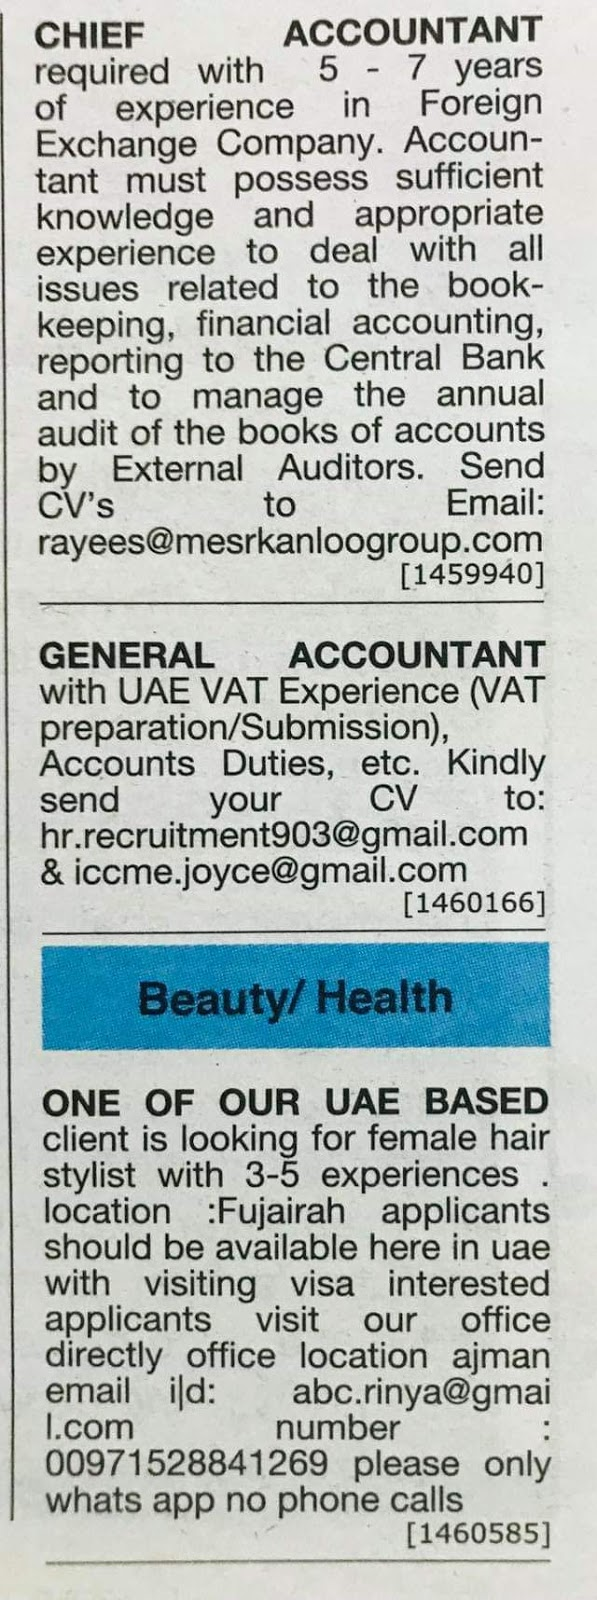 Required Chief Accountant & General Accountant for UAE Local Hiring